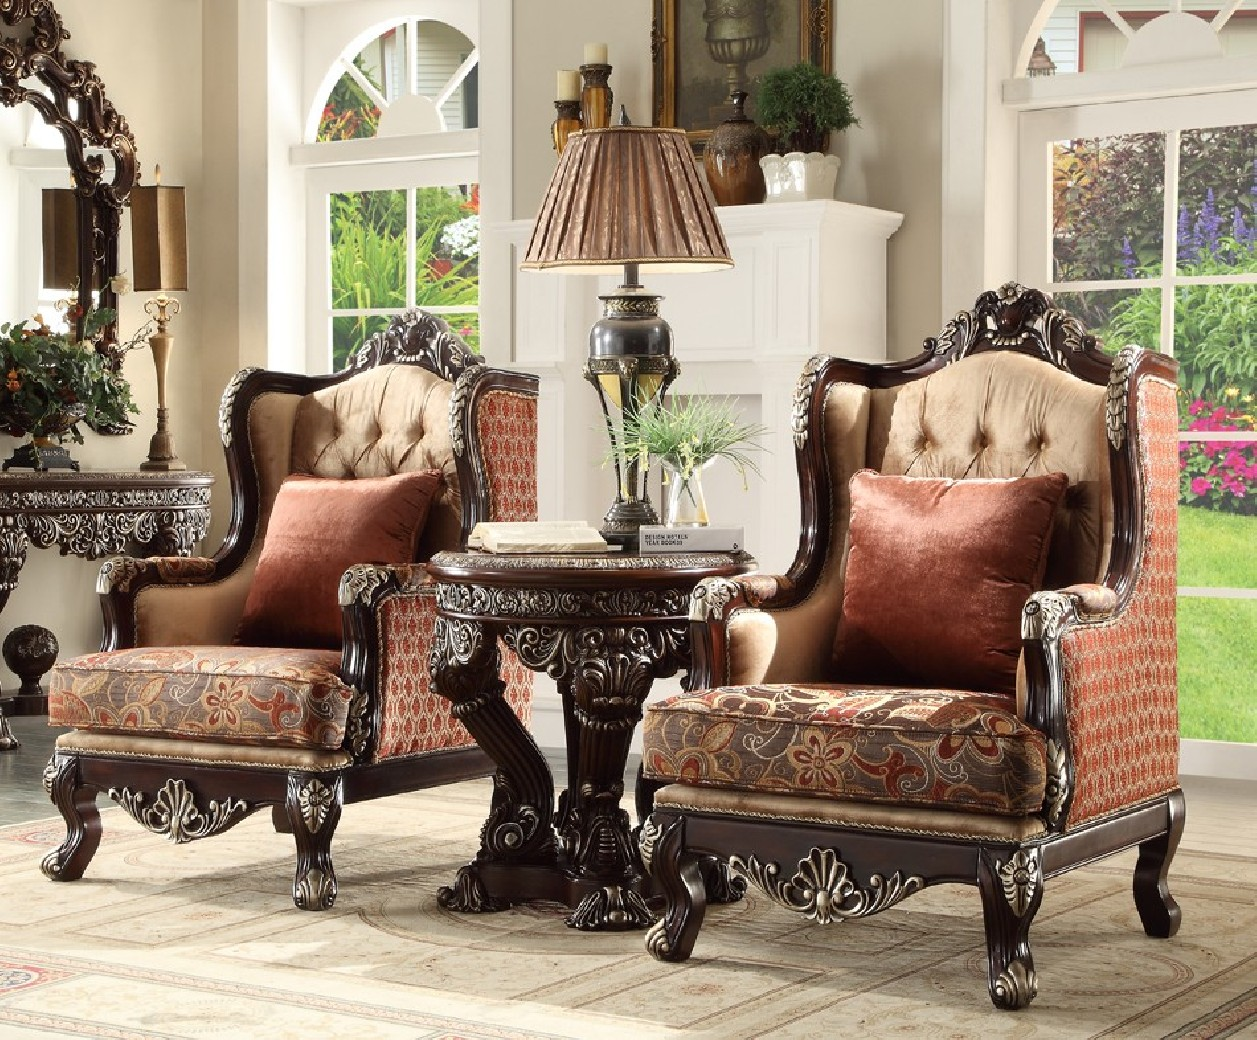 HD 111 Homey Design Upholstery Accent Chair Victorian, European U0026 Classic  Design